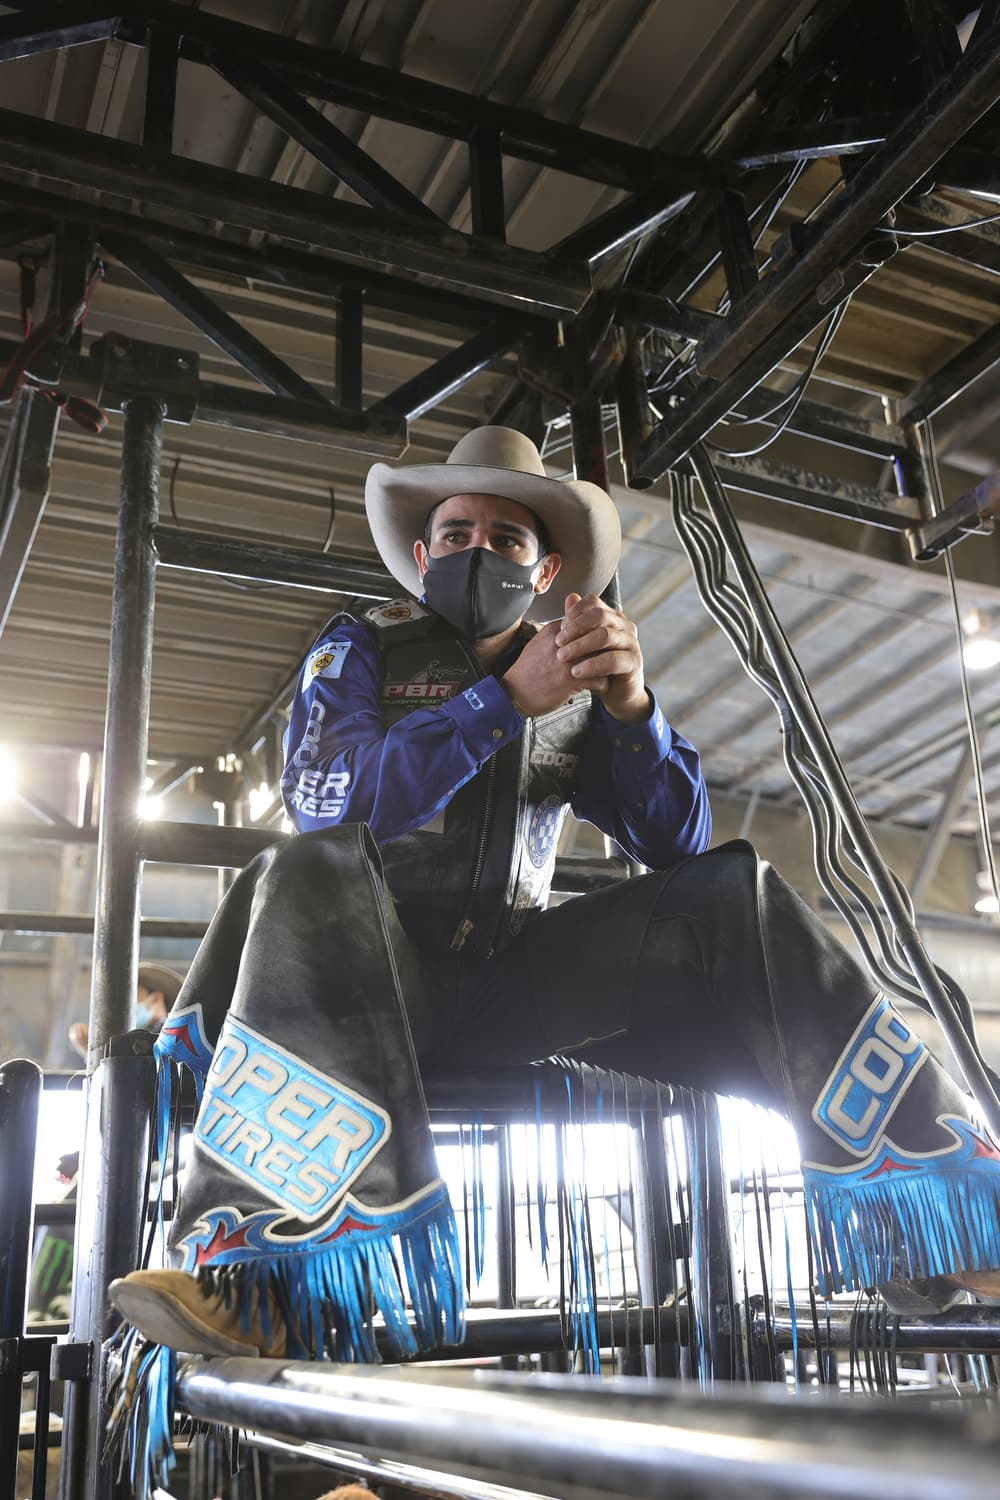 PBR rodeo